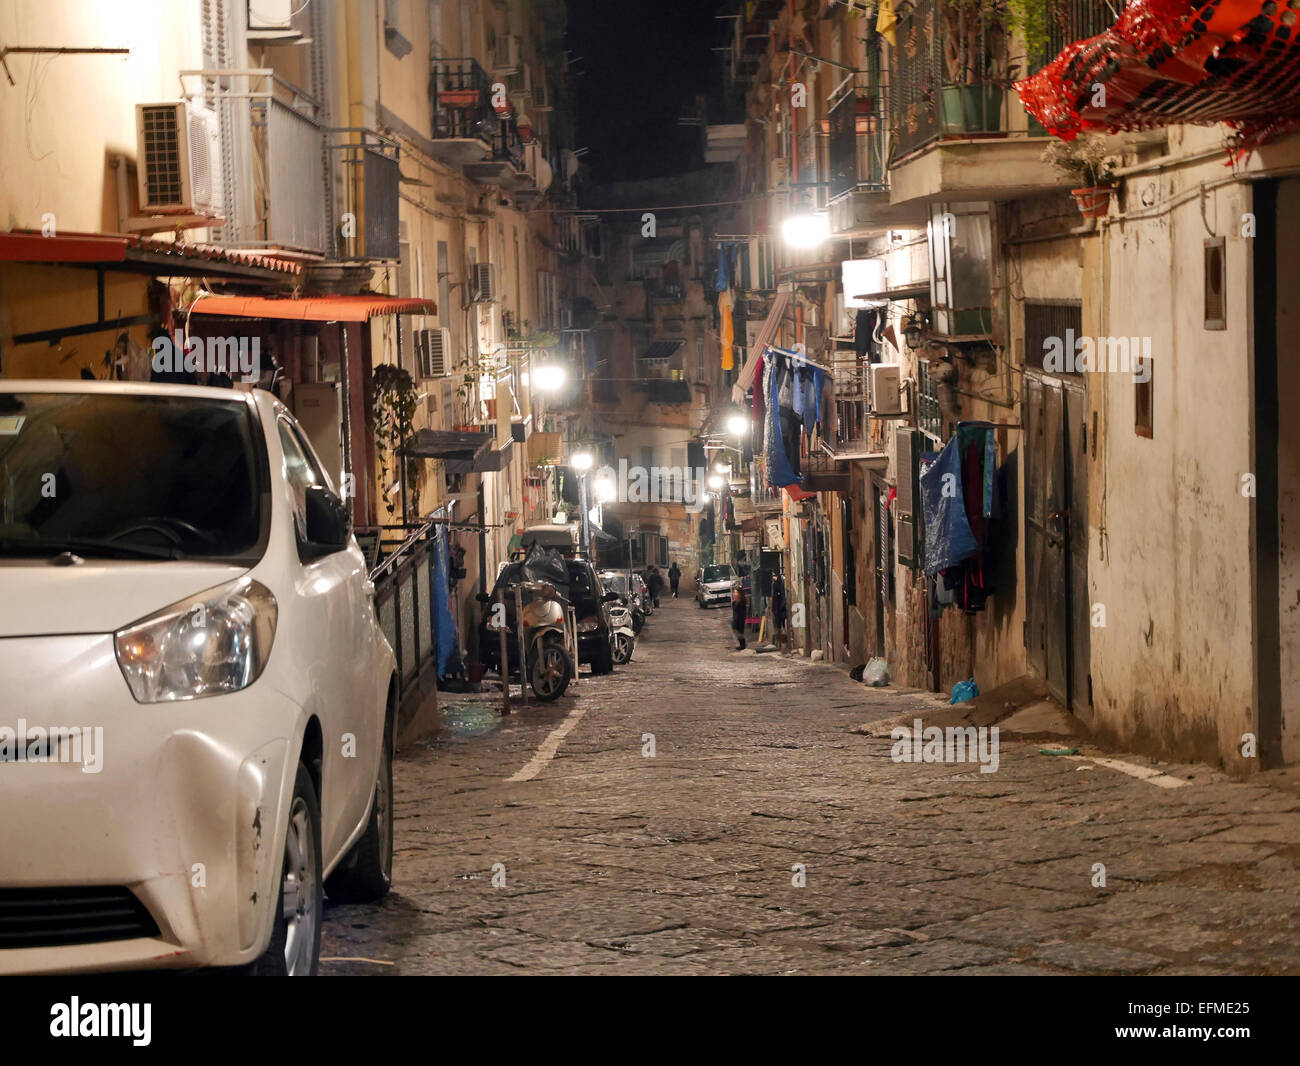 Maradona Napoli Stock Photos & Maradona Napoli Stock Images - Alamy